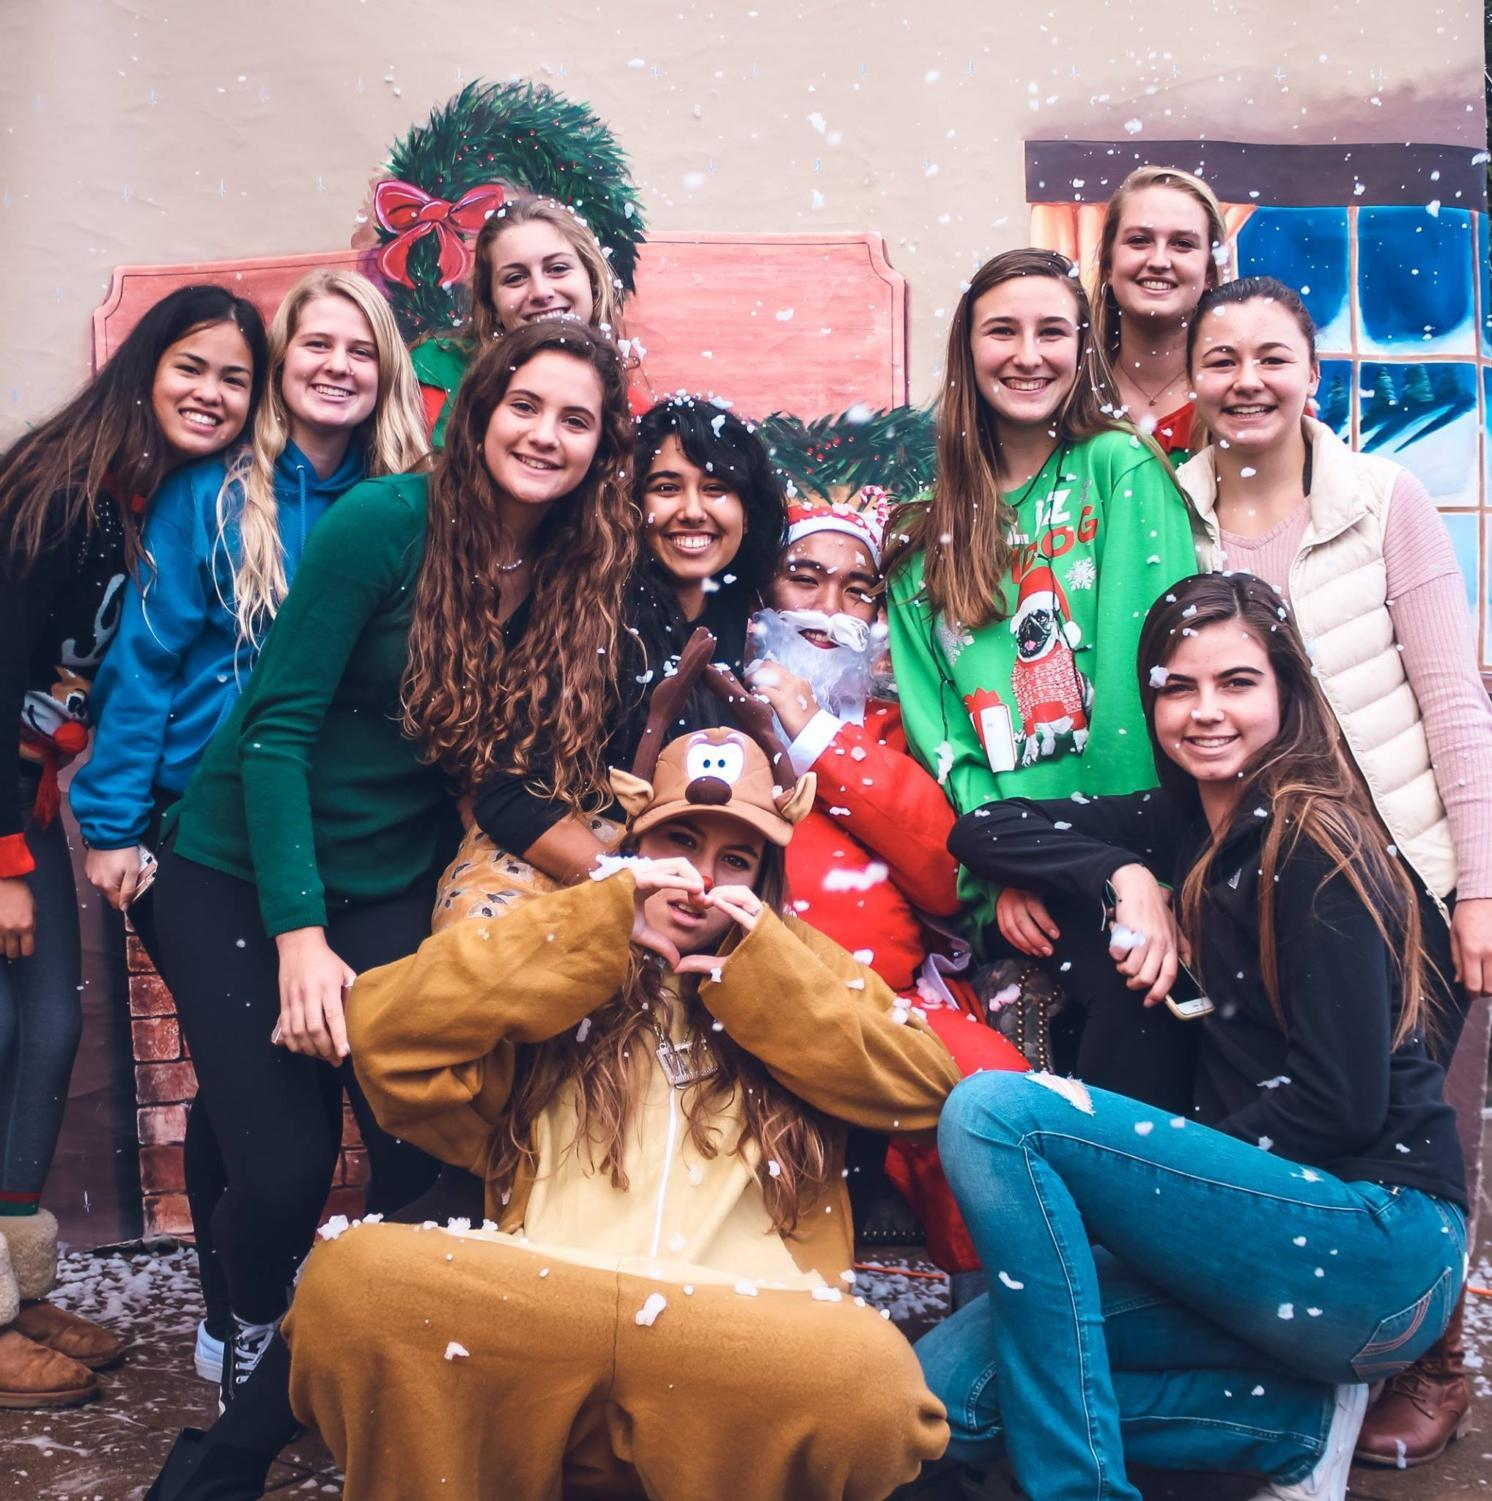 Students posed with Santa in their holiday sweaters at last year's holiday event.